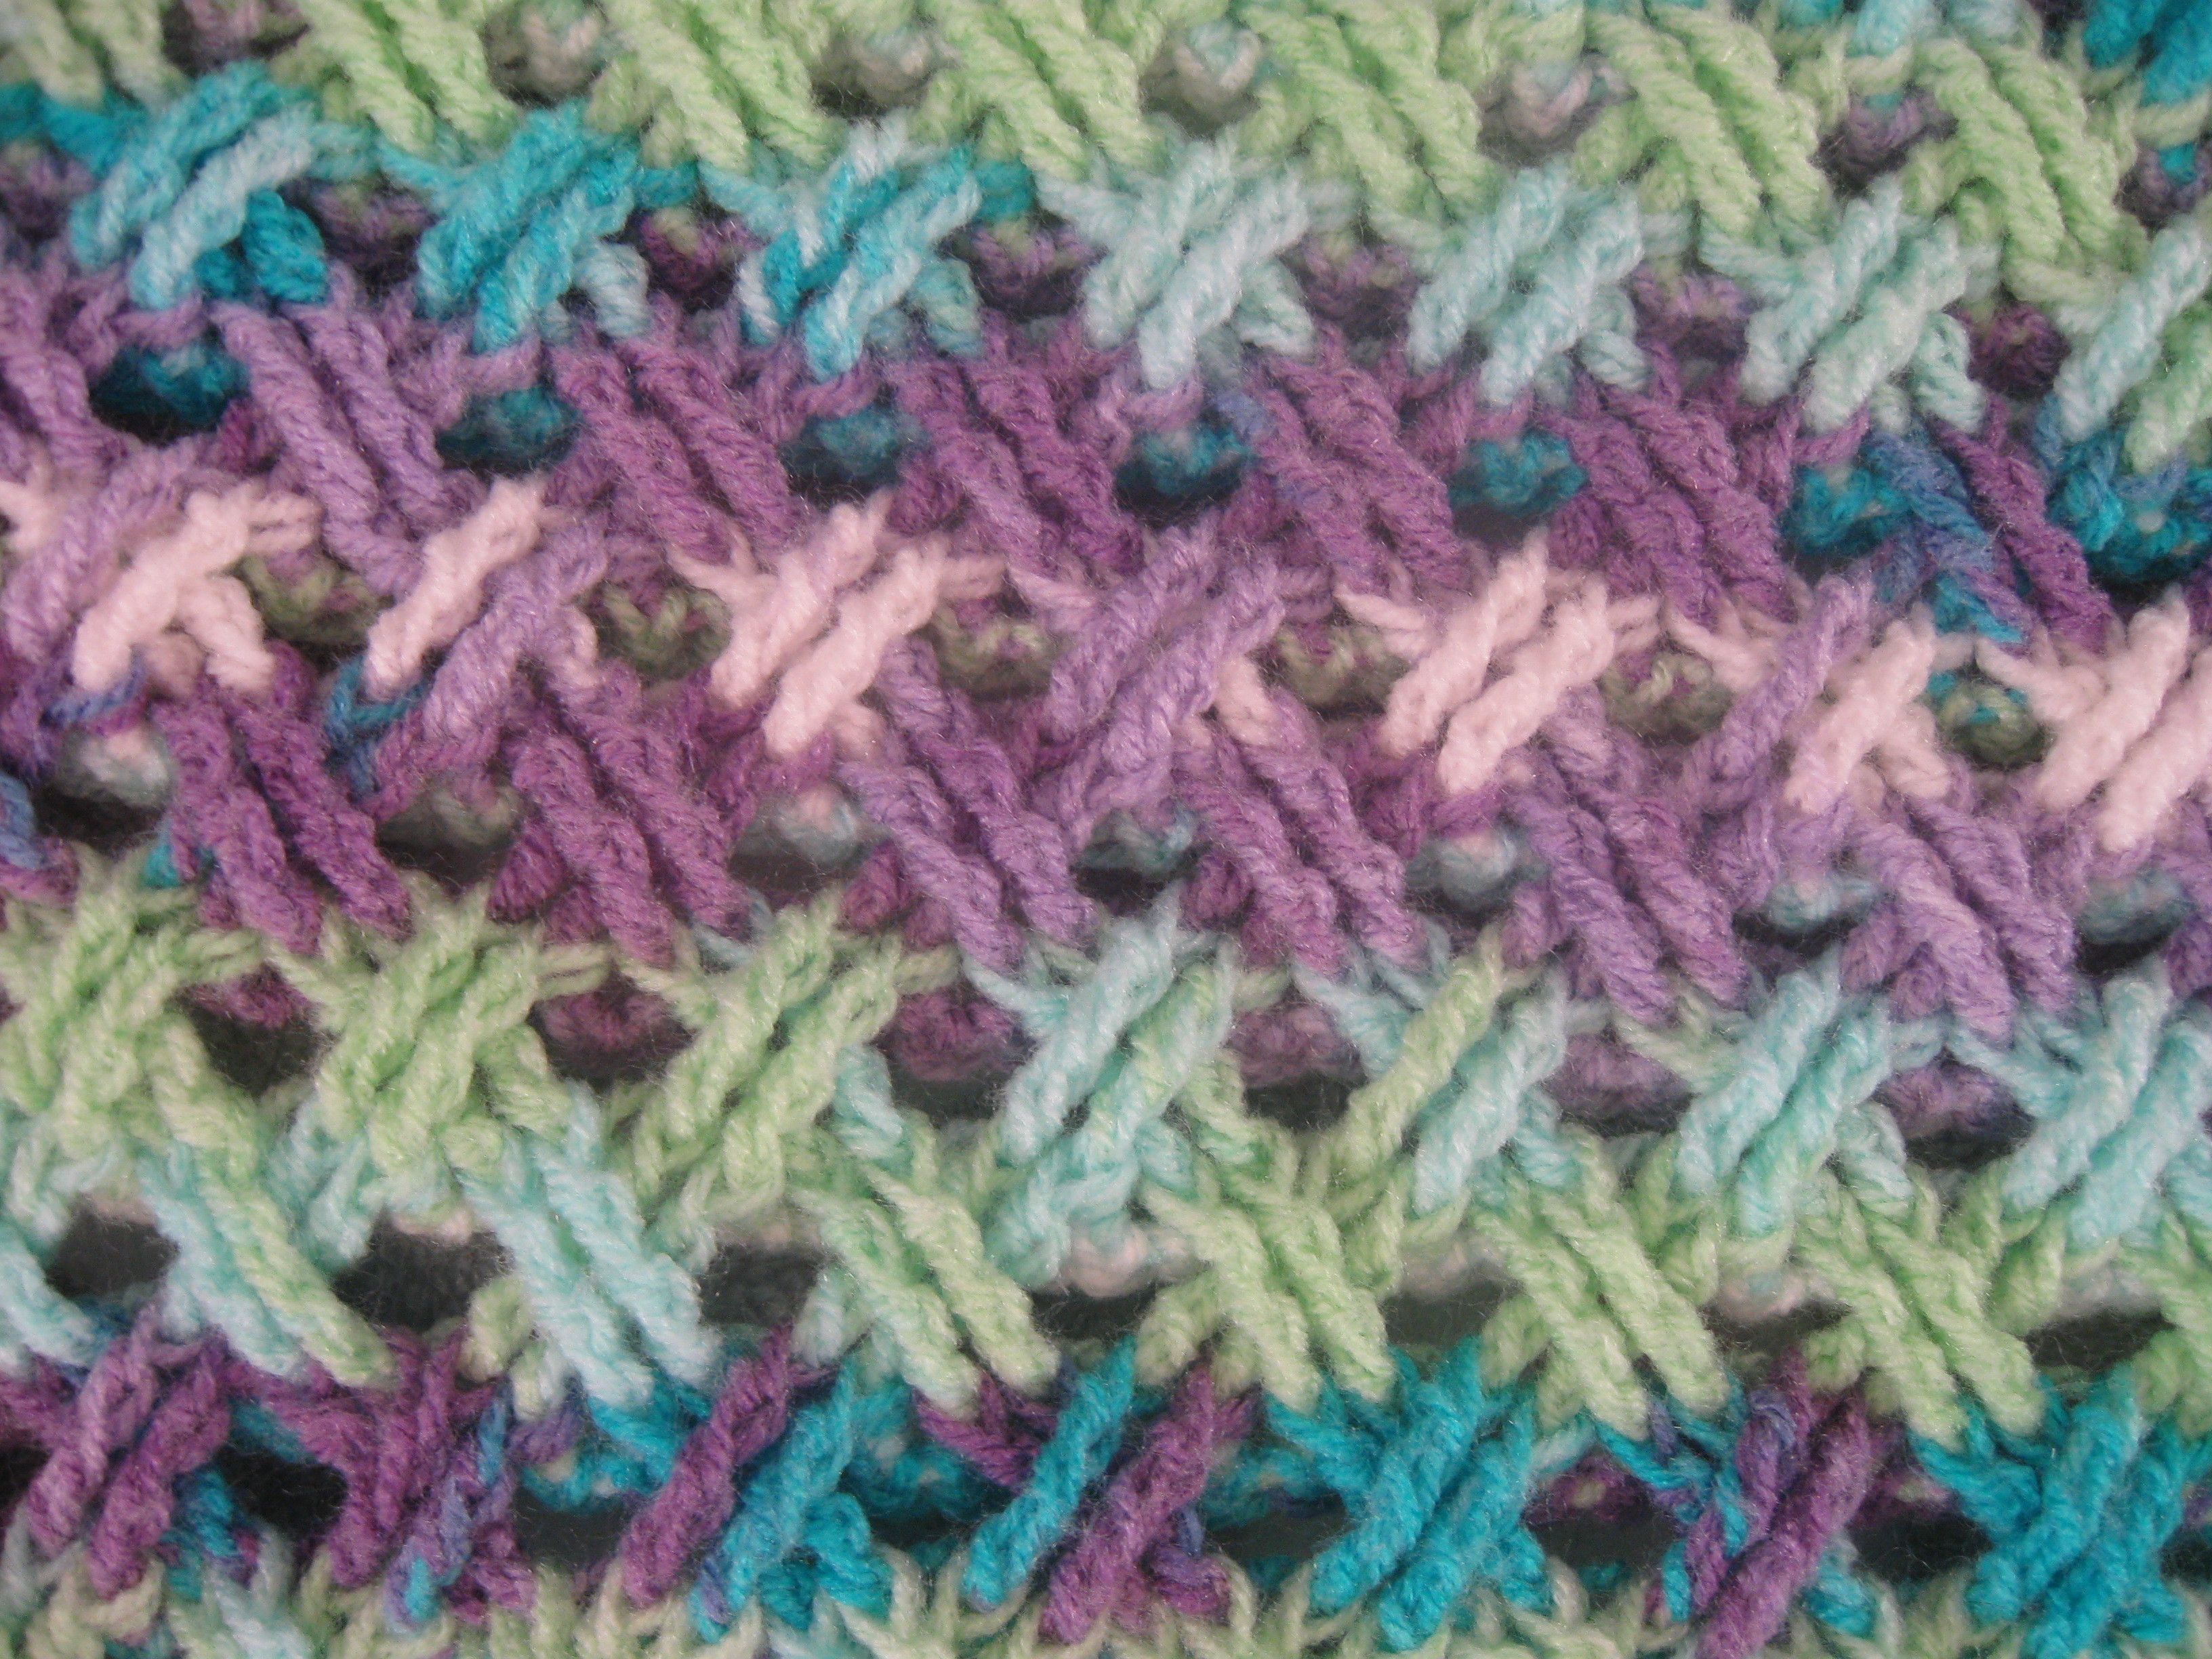 Crochet Stitches Beautiful Meladora S Creations – Interweave Cable Celtic Weave Of Great 46 Pics Crochet Stitches